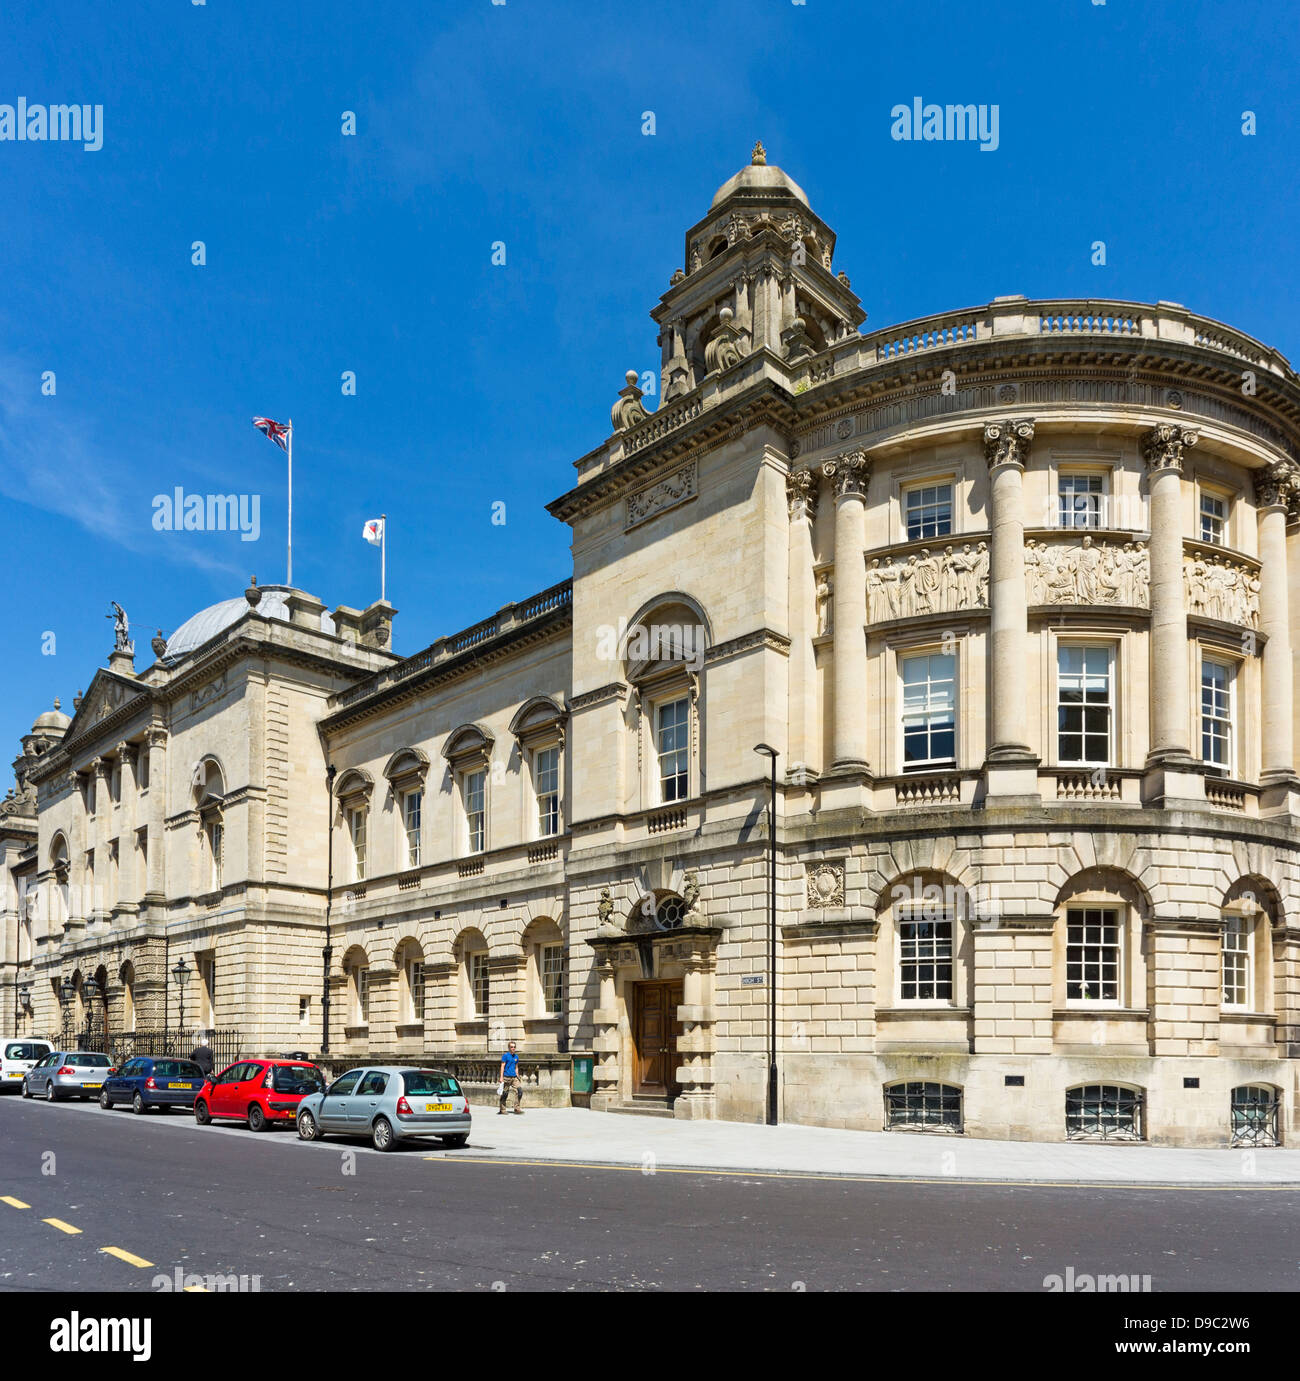 La Guildhall à Bath, Somerset, England, UK Photo Stock